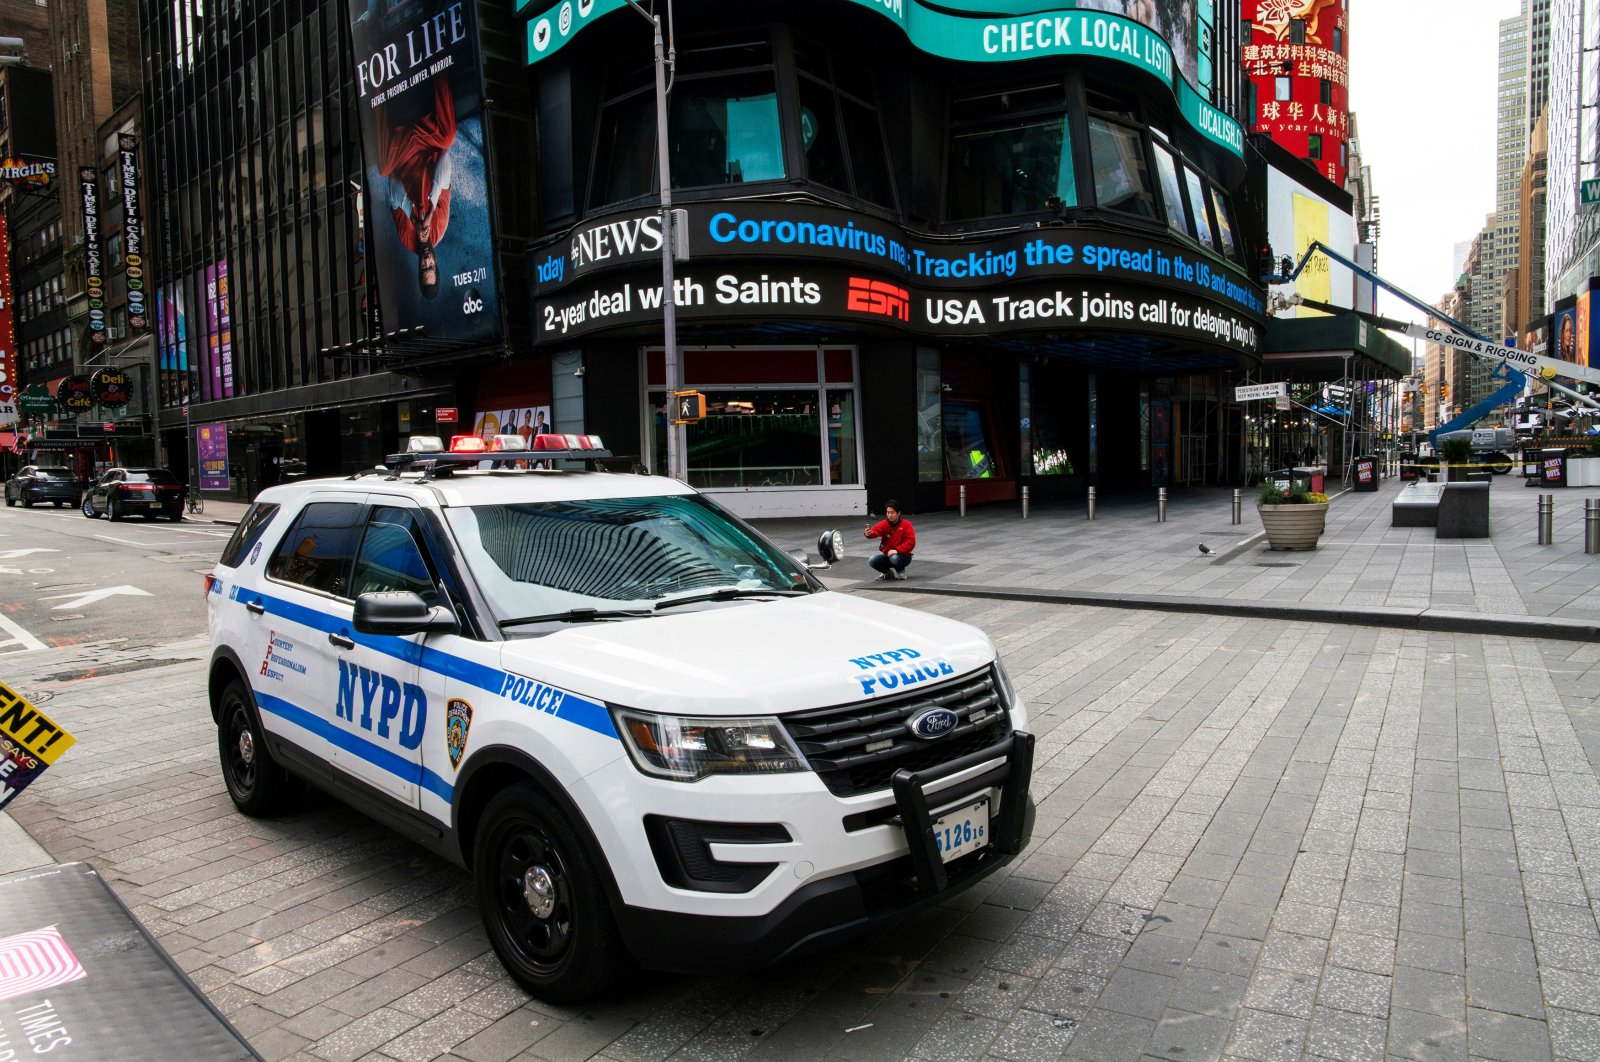 A NYPD police car stand guard at Times Square as the coronavirus disease (COVID-19) outbreak continues in New York, U.S., March 21, 2020. (Reuters Photo)